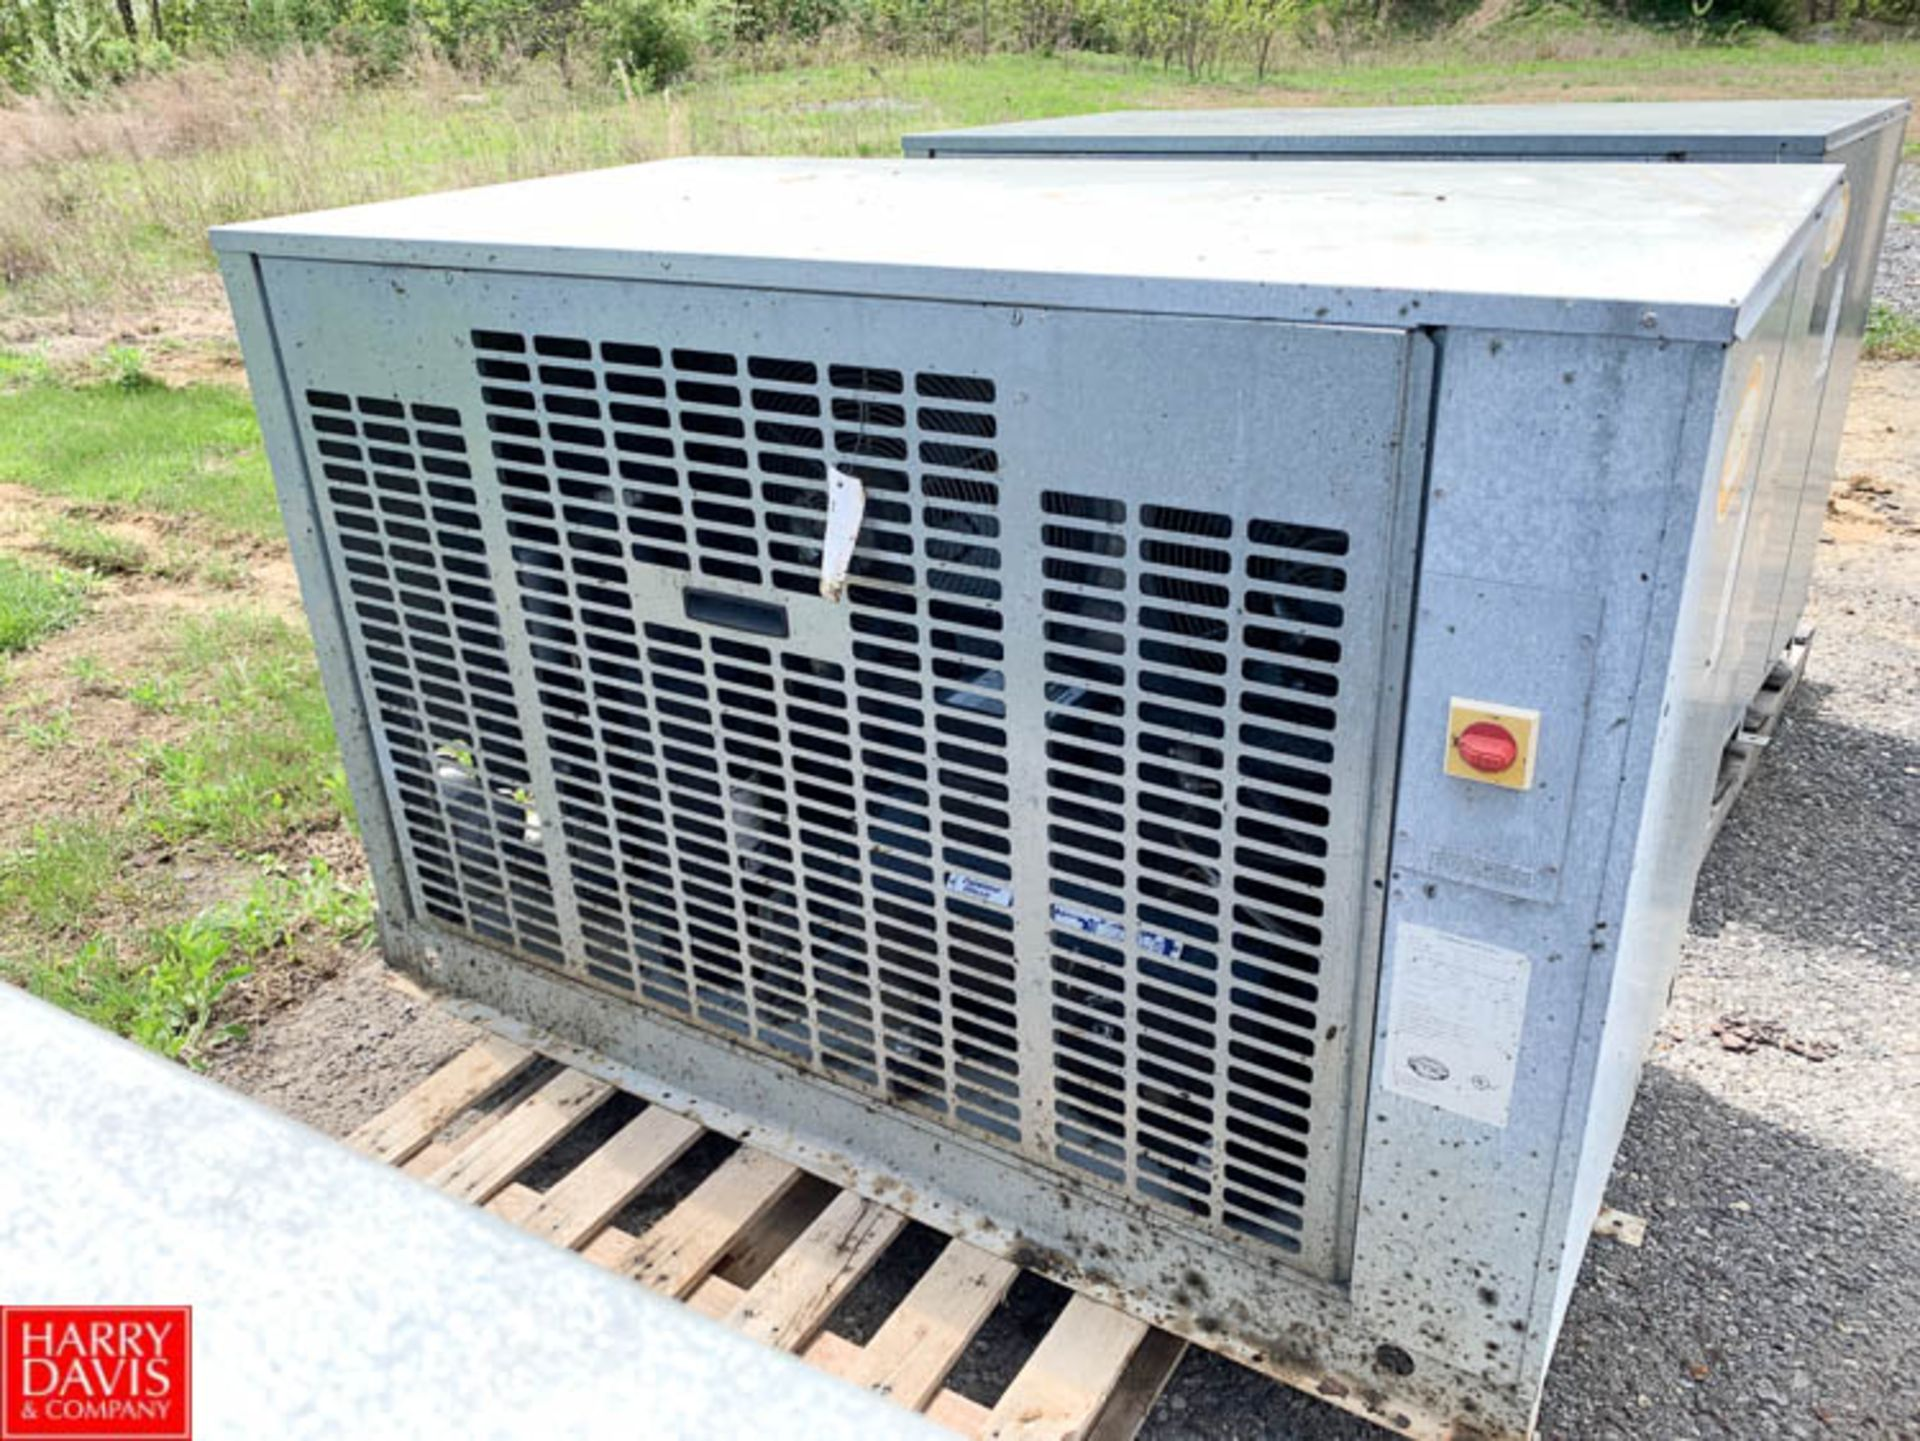 Lot 48 - Trenton Freon Condenser Unit, Model TESA-080H6-HTB4-3747, R404/R507 Refrigerant - Rigging Fee: $25